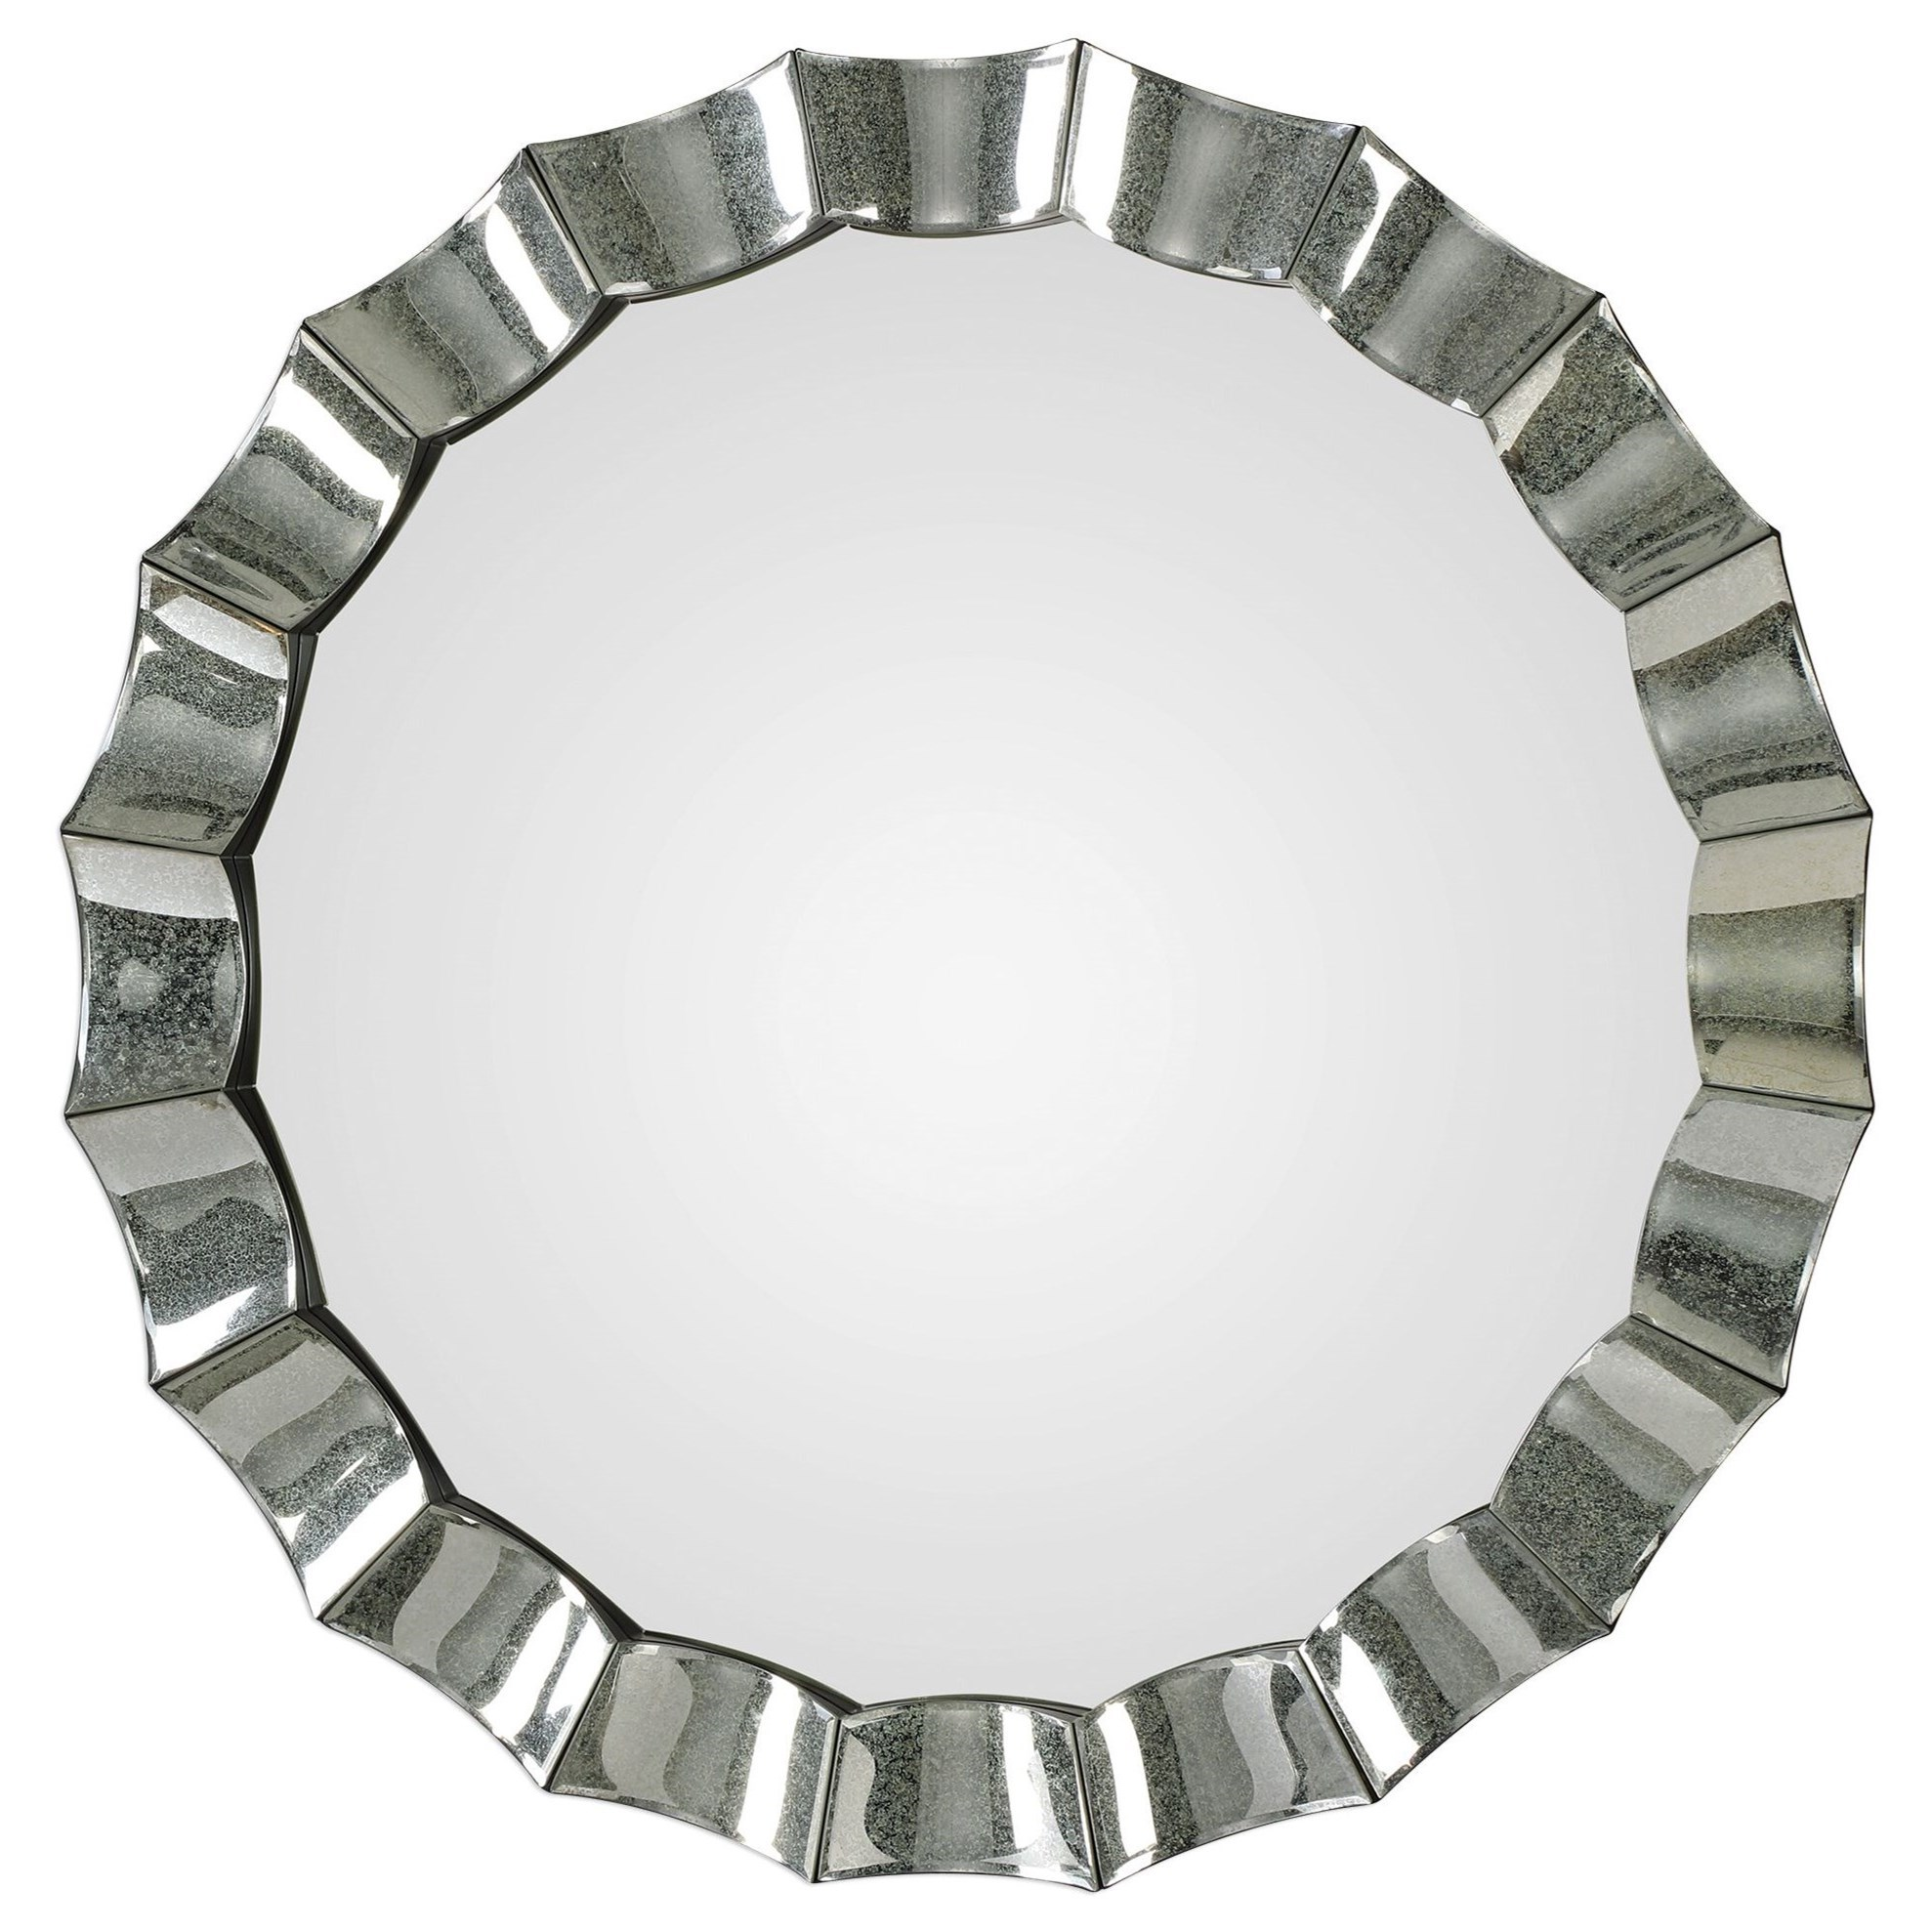 Mirrors - Round Sabino Scalloped Round Mirror by Uttermost at Upper Room Home Furnishings